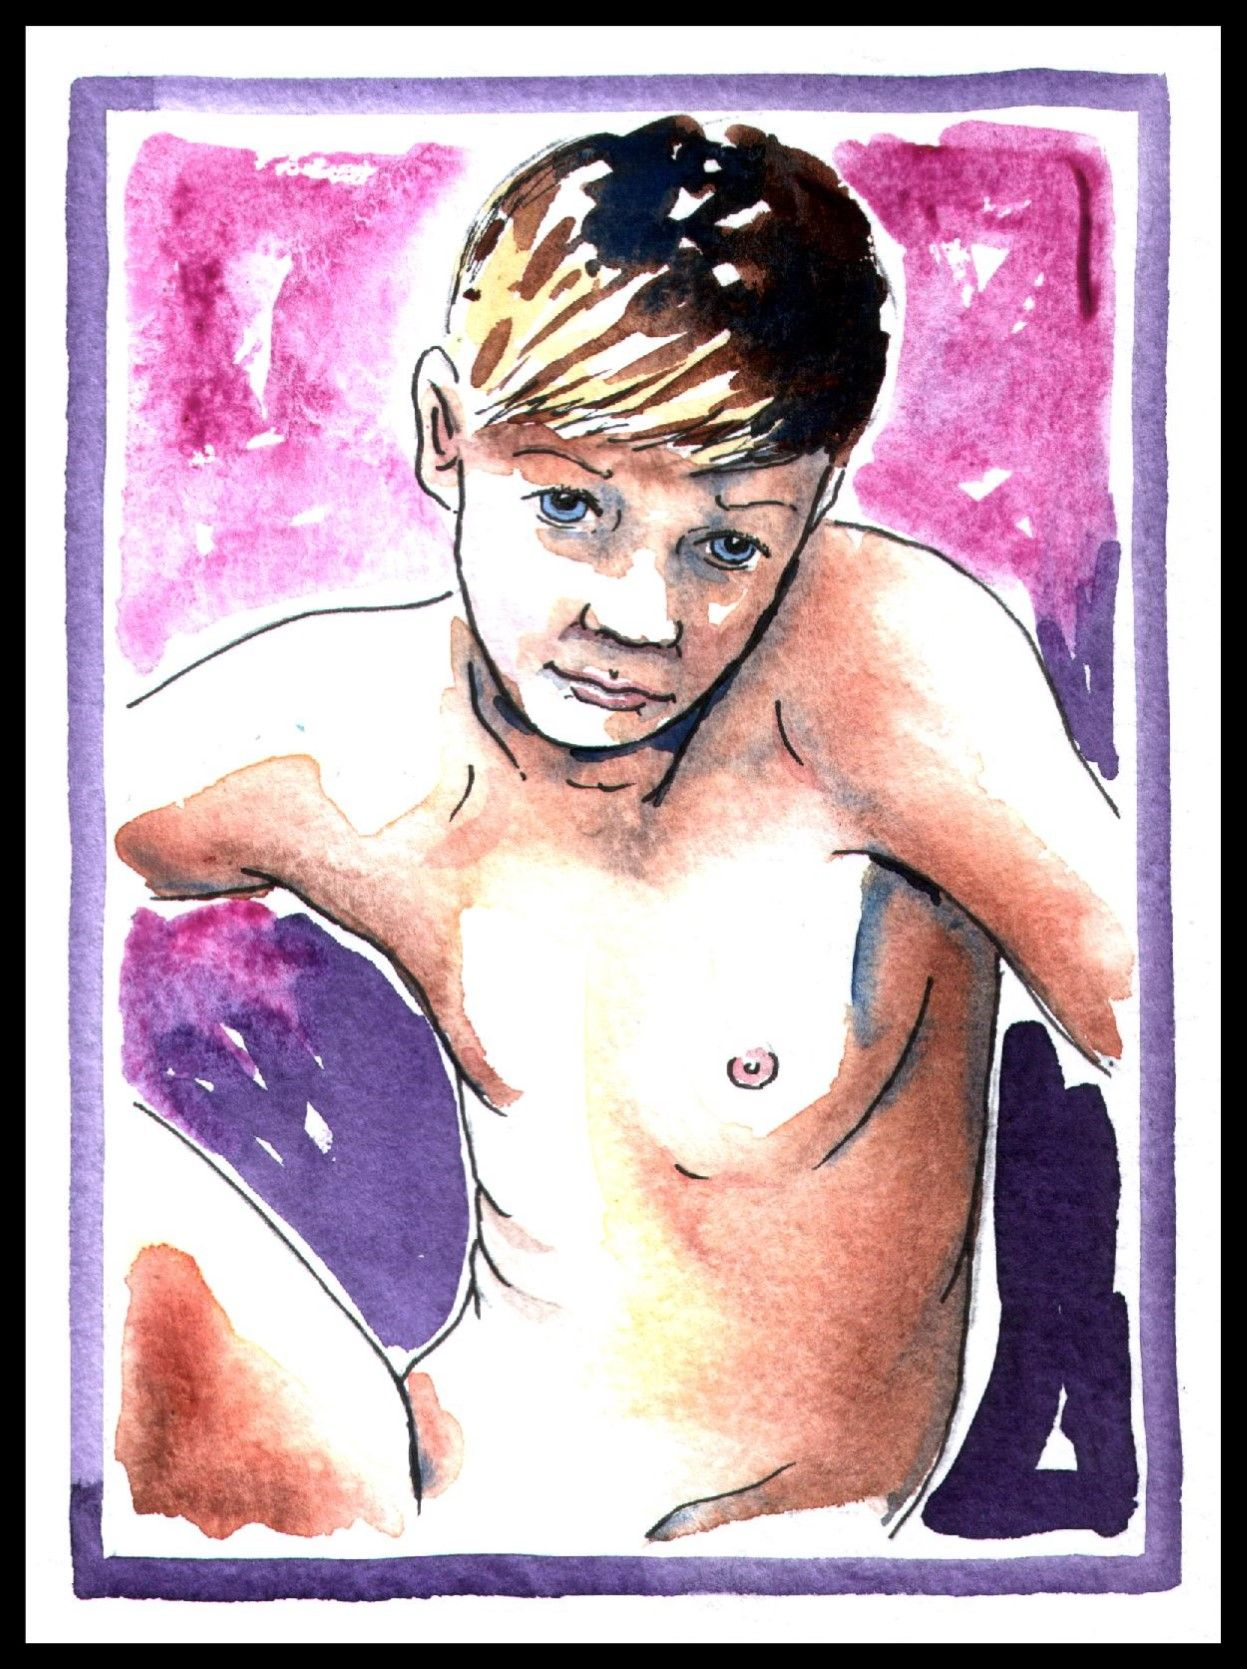 SELF PORTRAIT: The artist as a child.   15 minute watercolour sketch by Lidbury 2004.    Police raided the gay artist's home & attempted to prosecute the artist & failed.   Police had to admit in court & an IPCC enquiry that there were NO illegal images.    According to a Home Office report in 2005 Homophobia was an endemic problem within UK police.